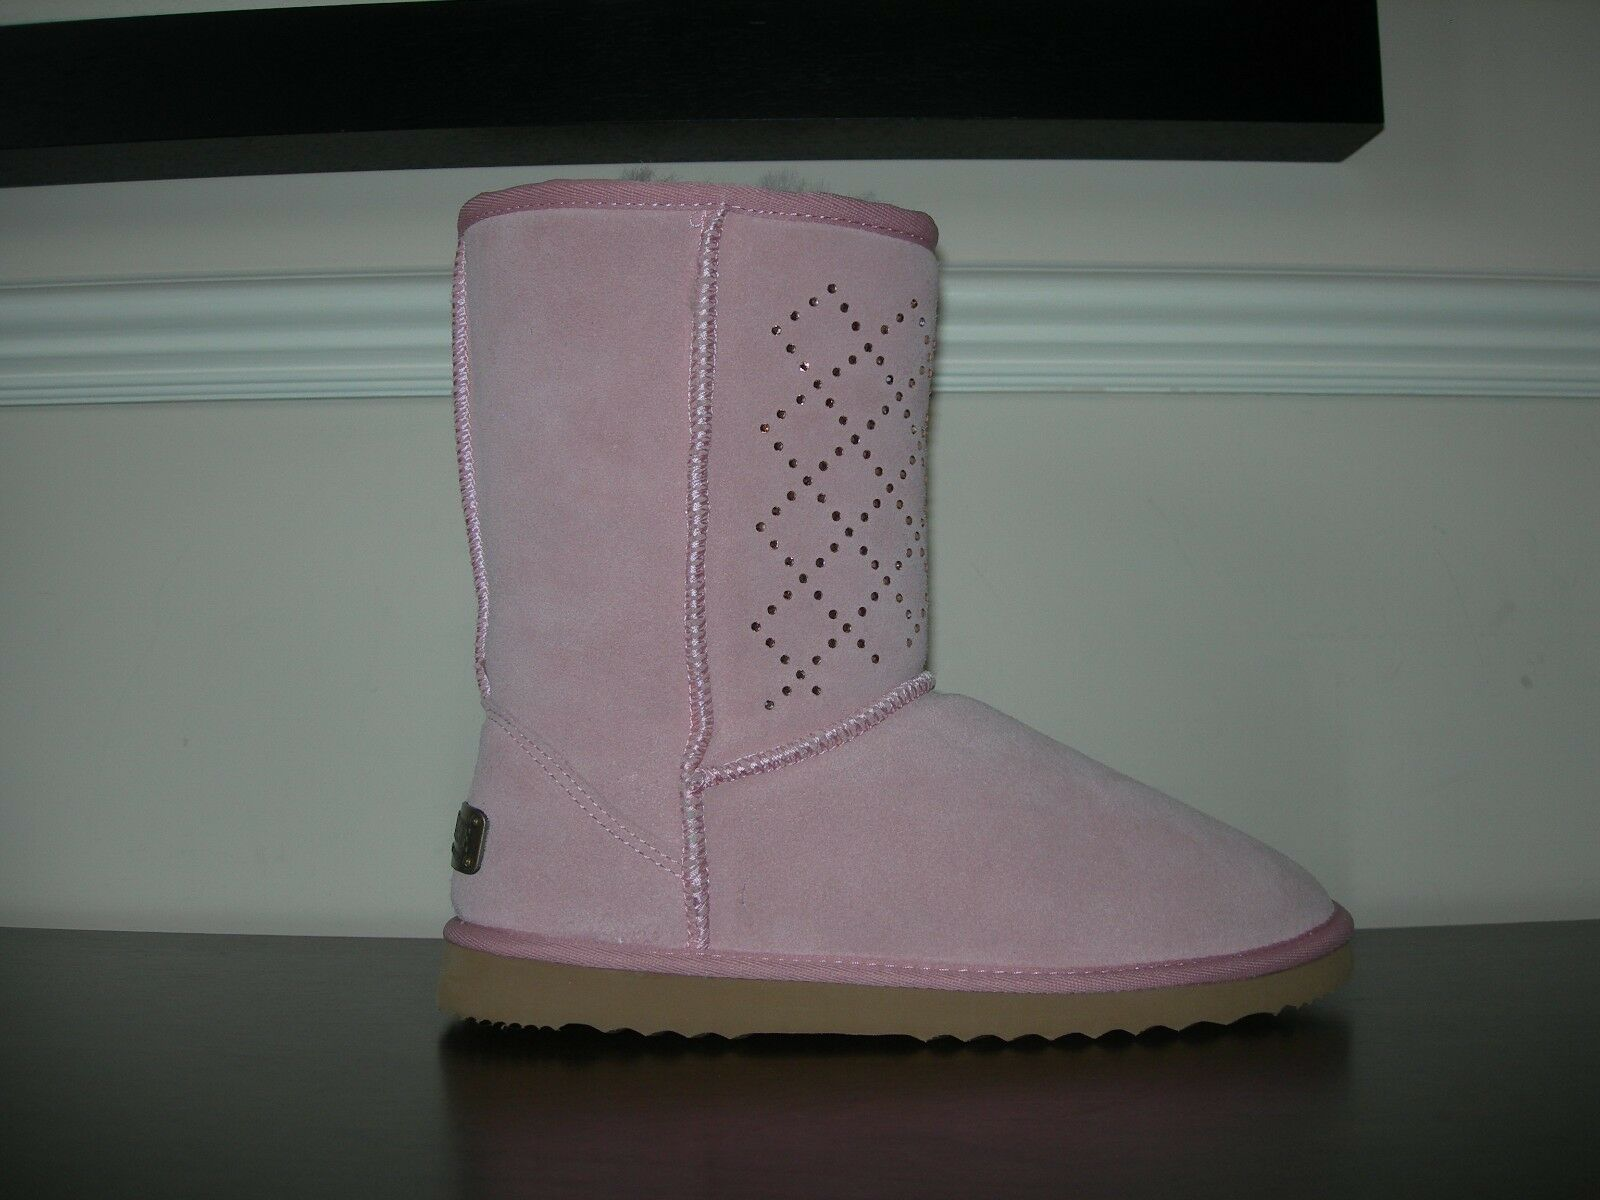 CLOUD NINE SHEEPSKIN WOMEN'S BOOT CALF LENGTH DUSKY PINK RHINESTONE EU 41   UK 7